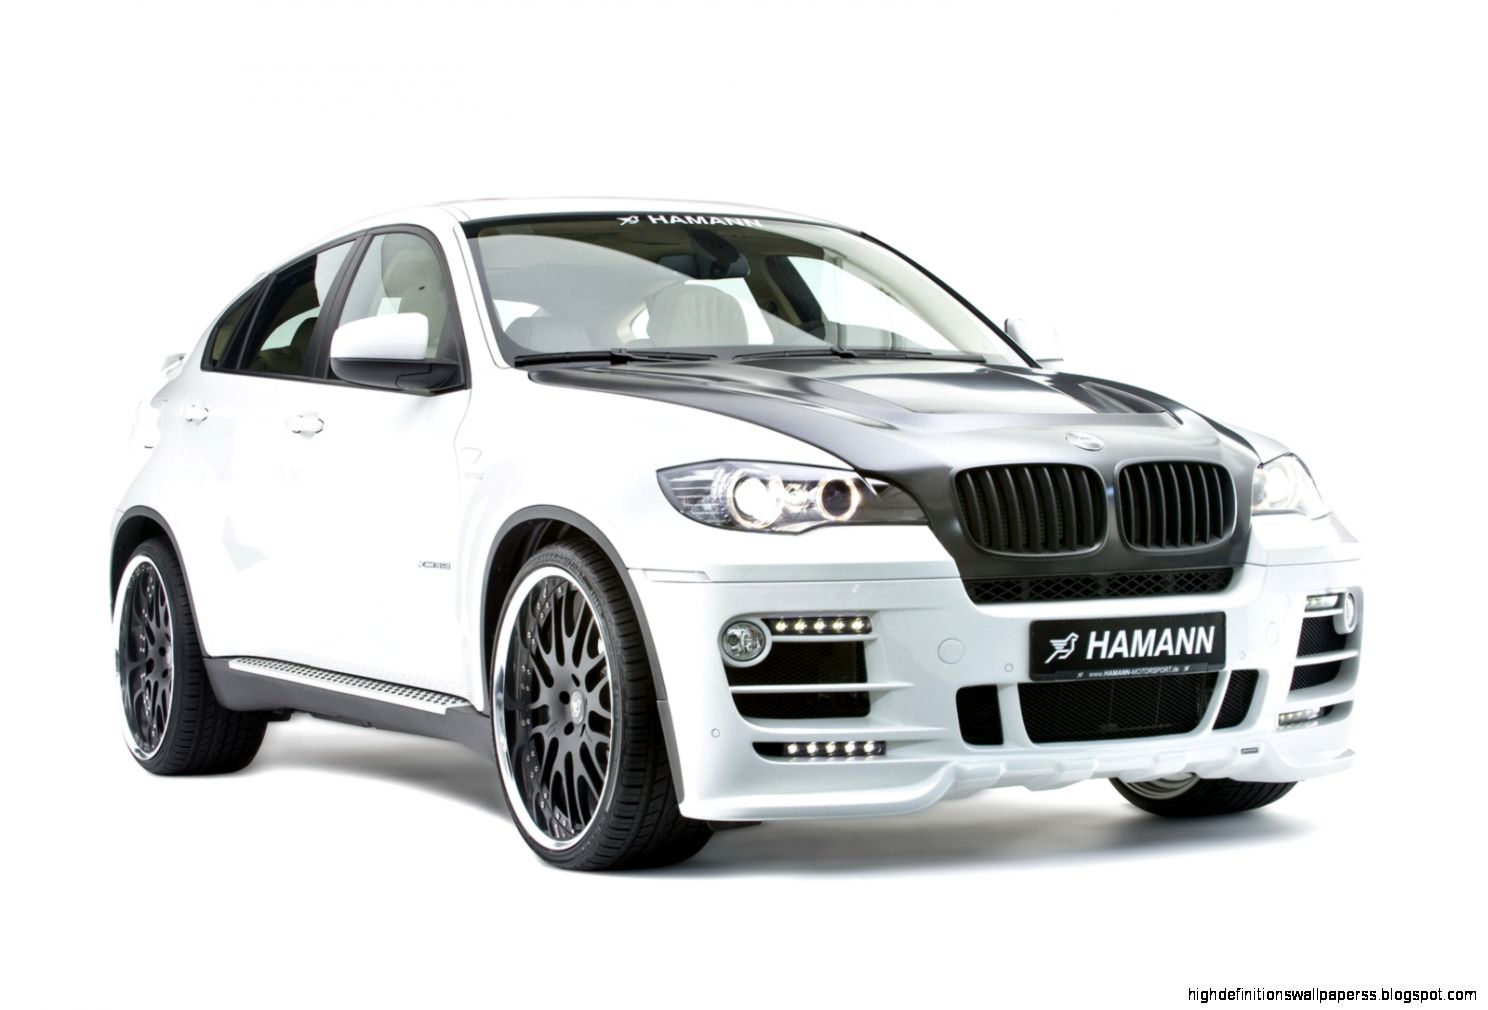 Bmw X6 Modified White Wallpapers Hd High Definitions Wallpaper - Medium